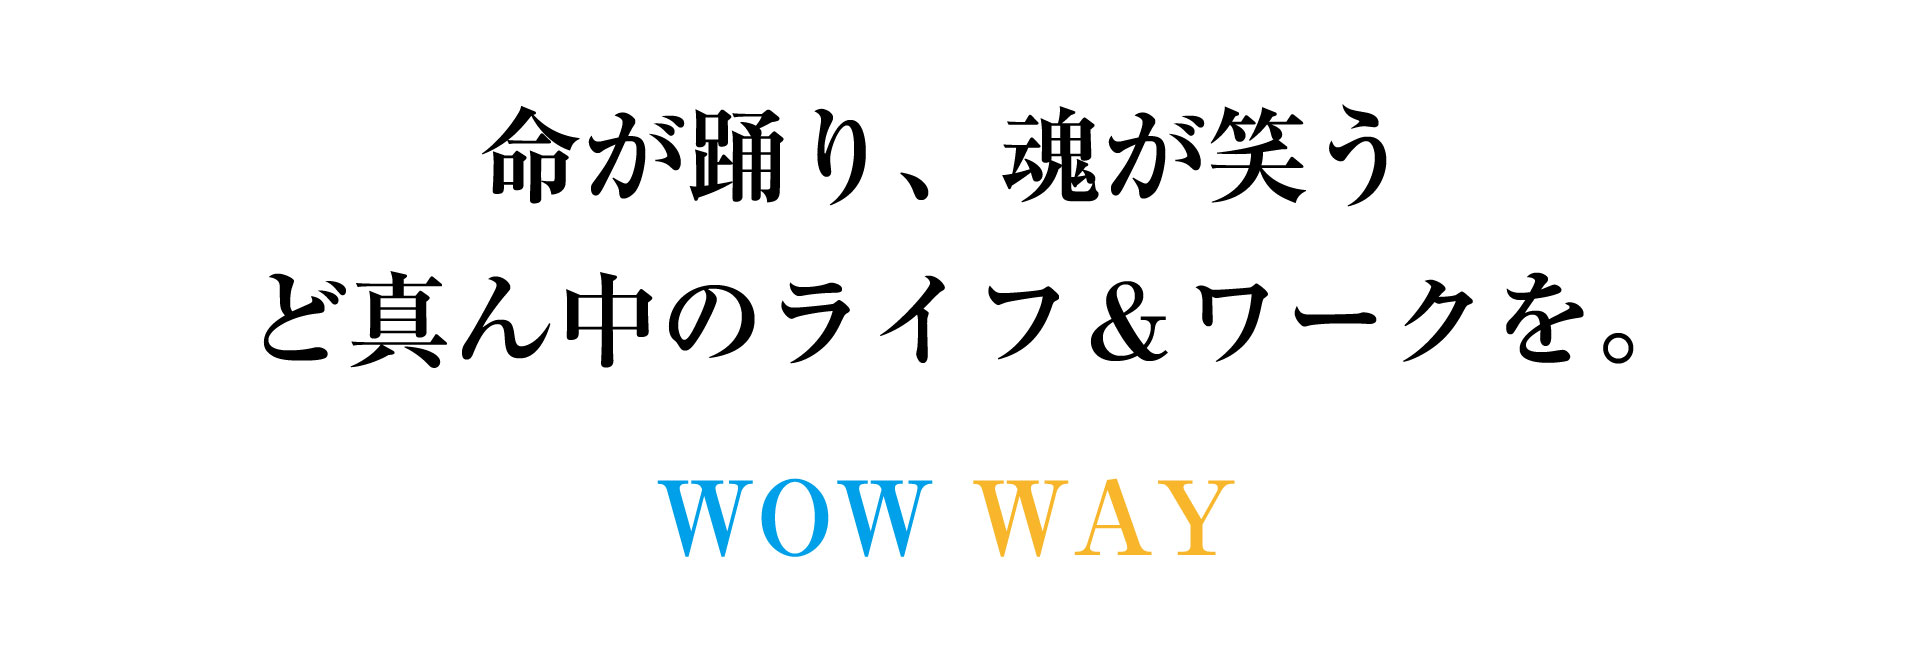 wowway-message